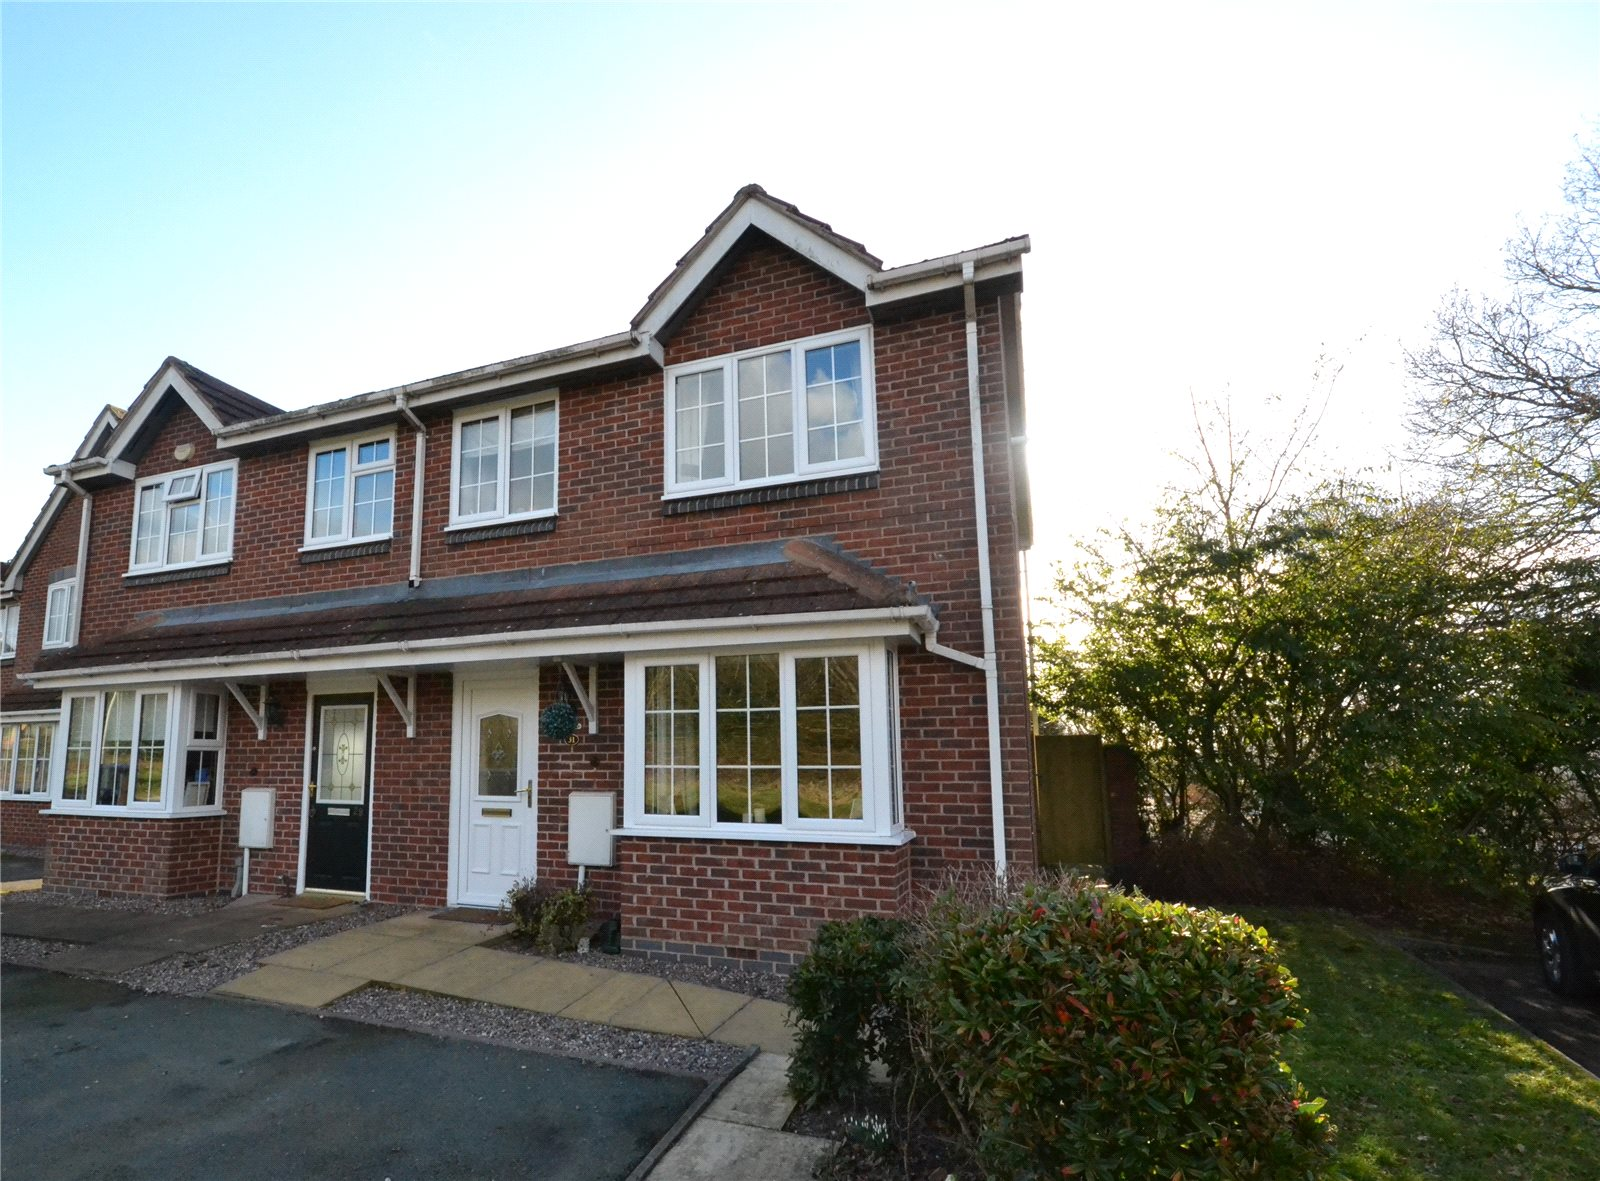 3 Bedrooms Semi Detached House for sale in 31 Snowdrop Meadow, Ketley, Telford, TF1